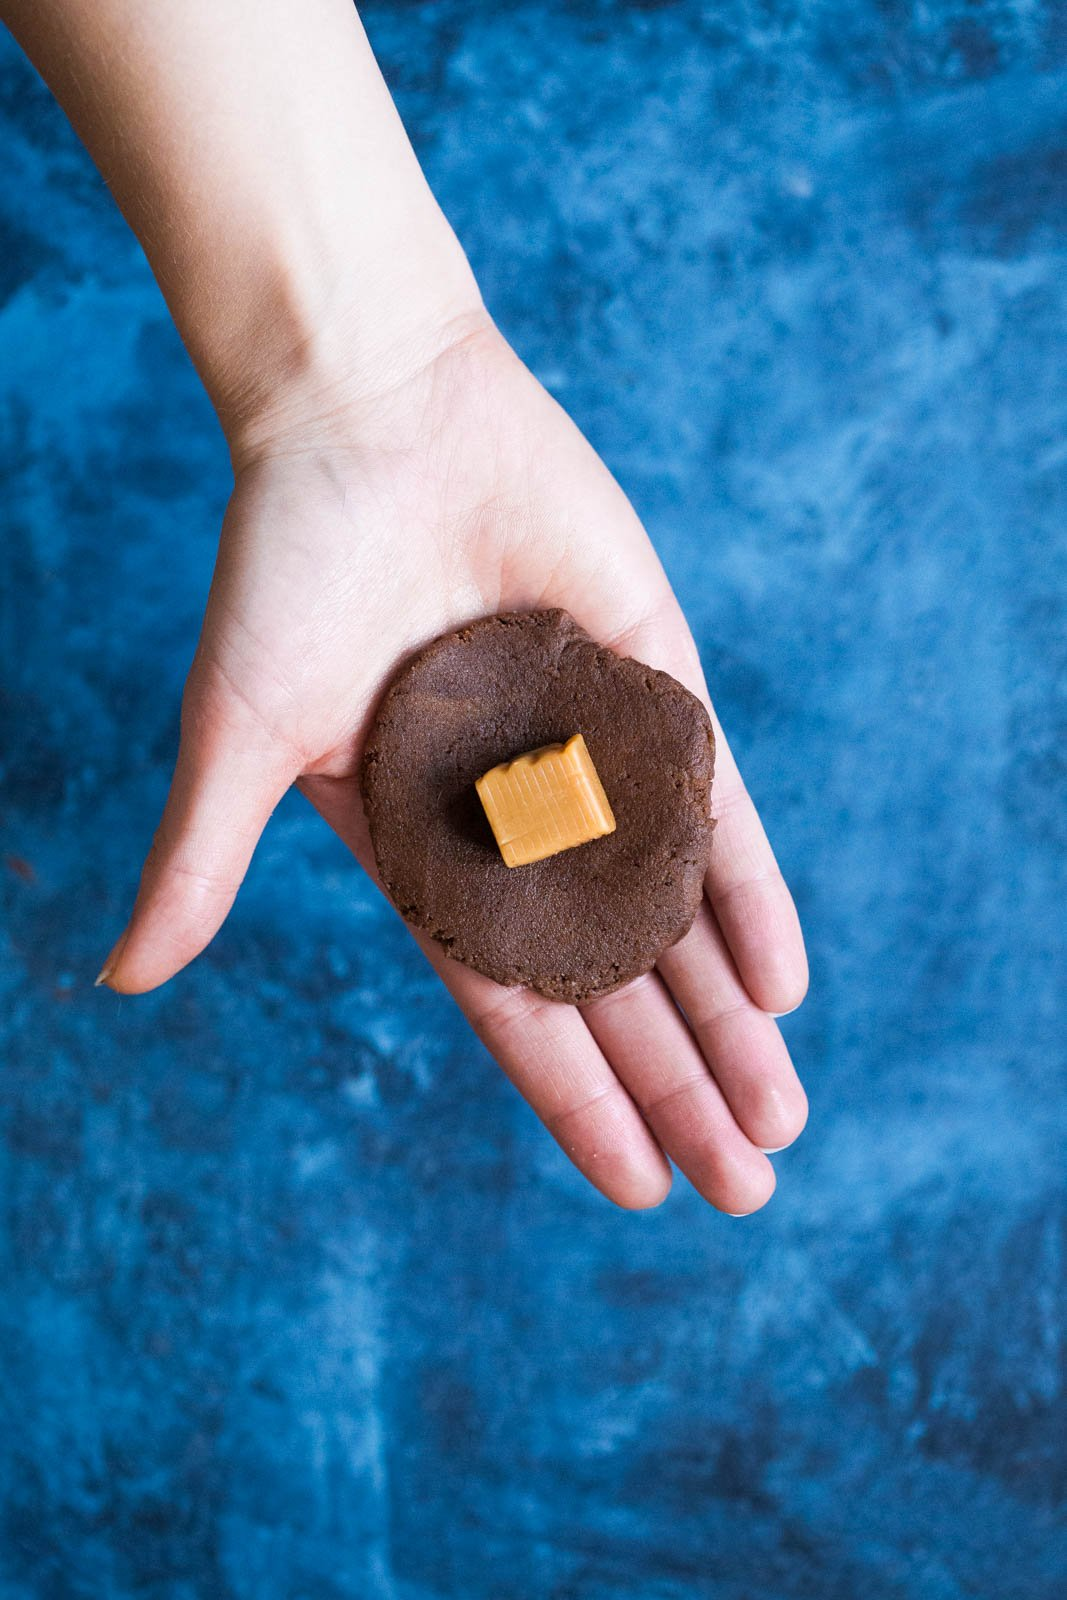 a caramel on top of chocolate snickerdoodle dough